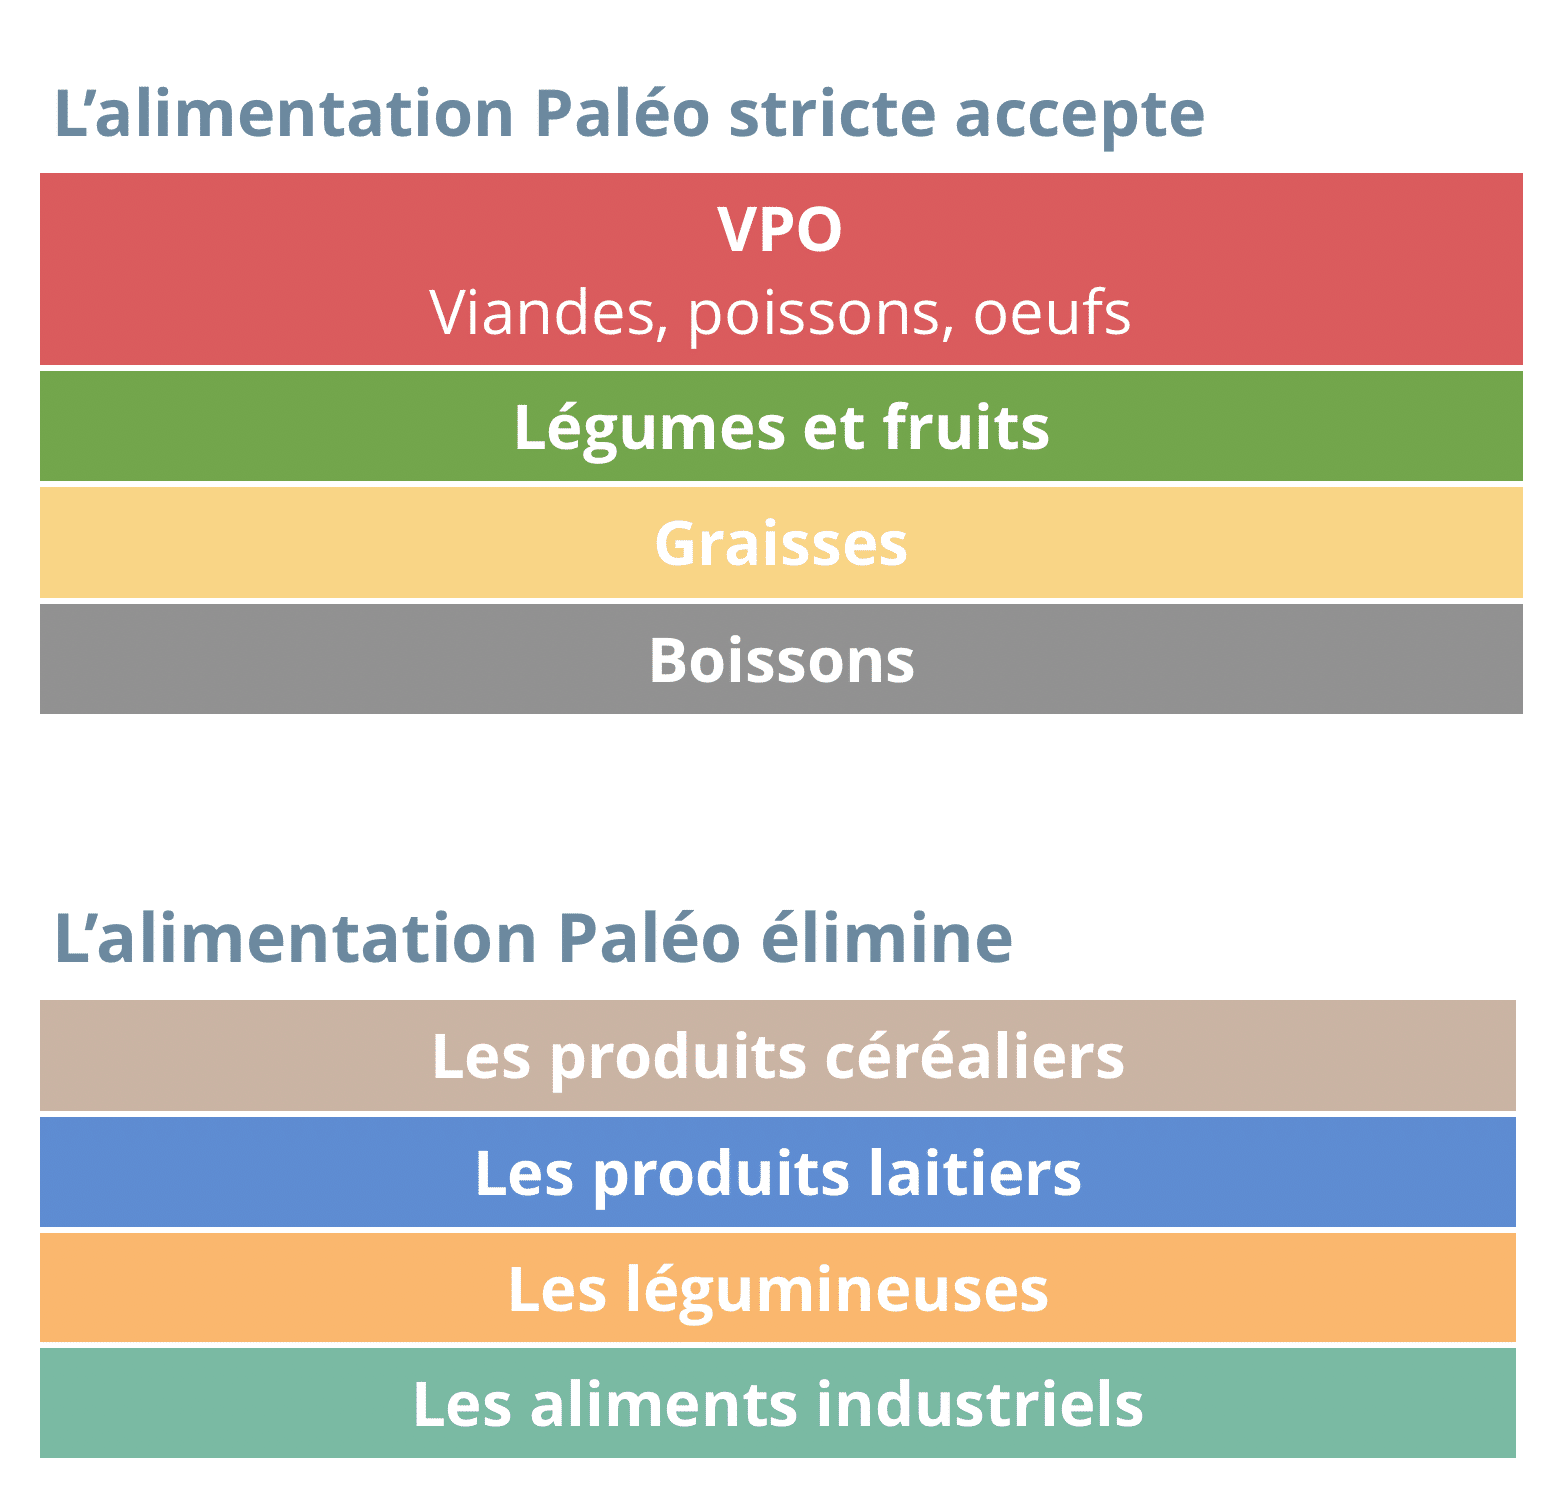 Groupes alimentaires Paléo